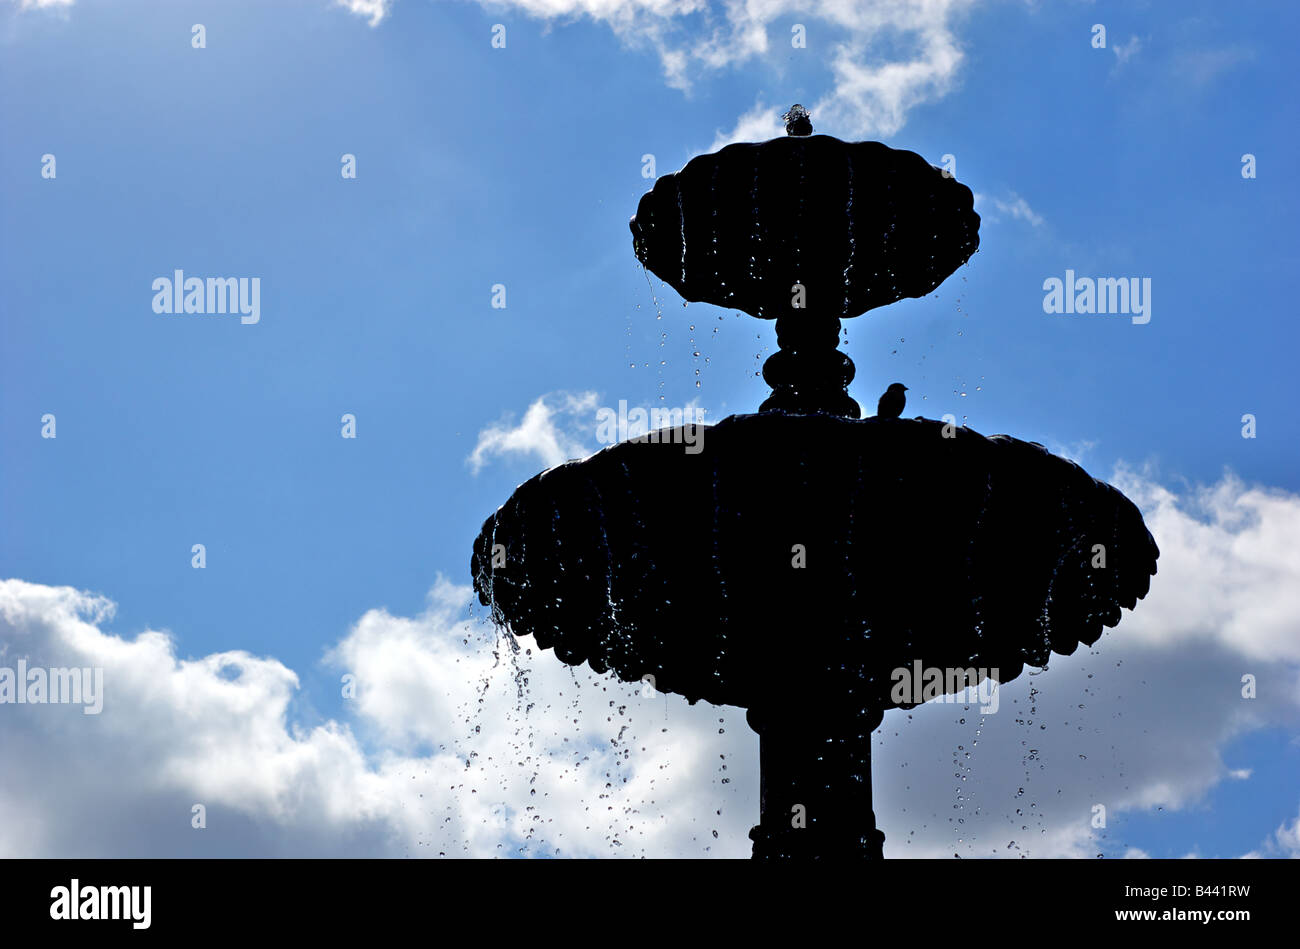 Silhouette Of Bird On A Water Fountain In Brooklyn New York